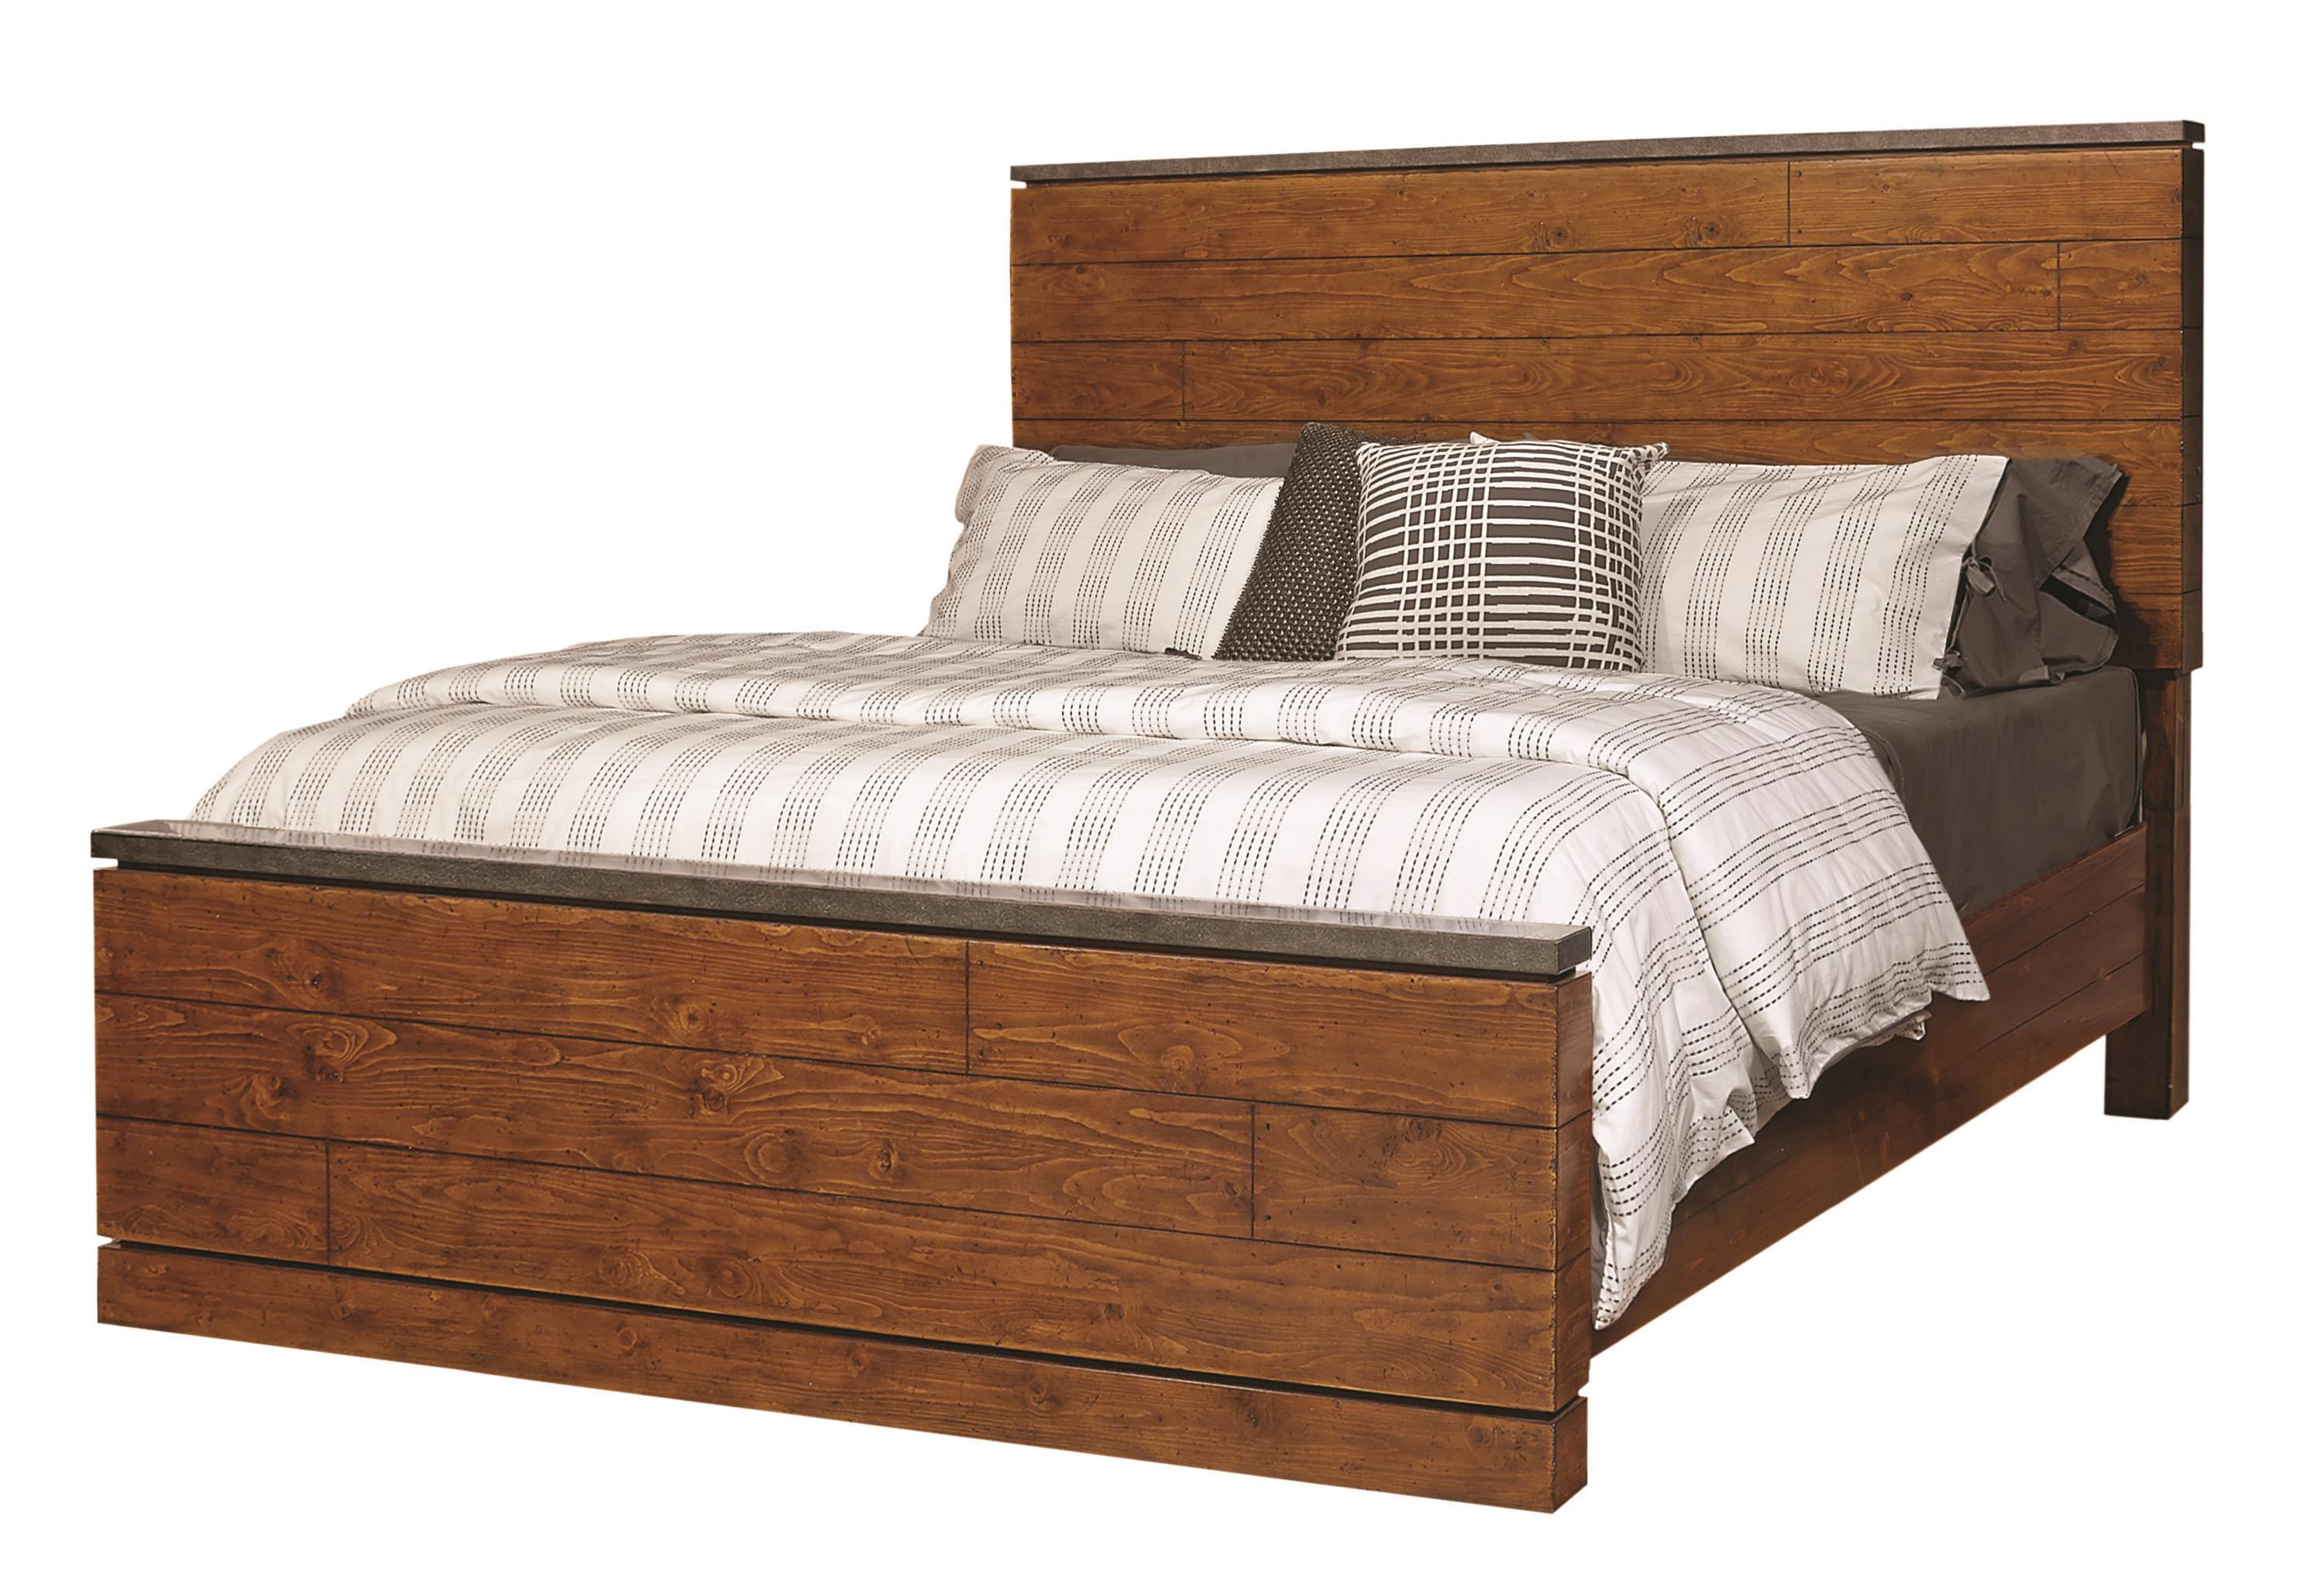 Aspenhome Rockland Queen Panel Bed - Item Number: I58-492+493+402